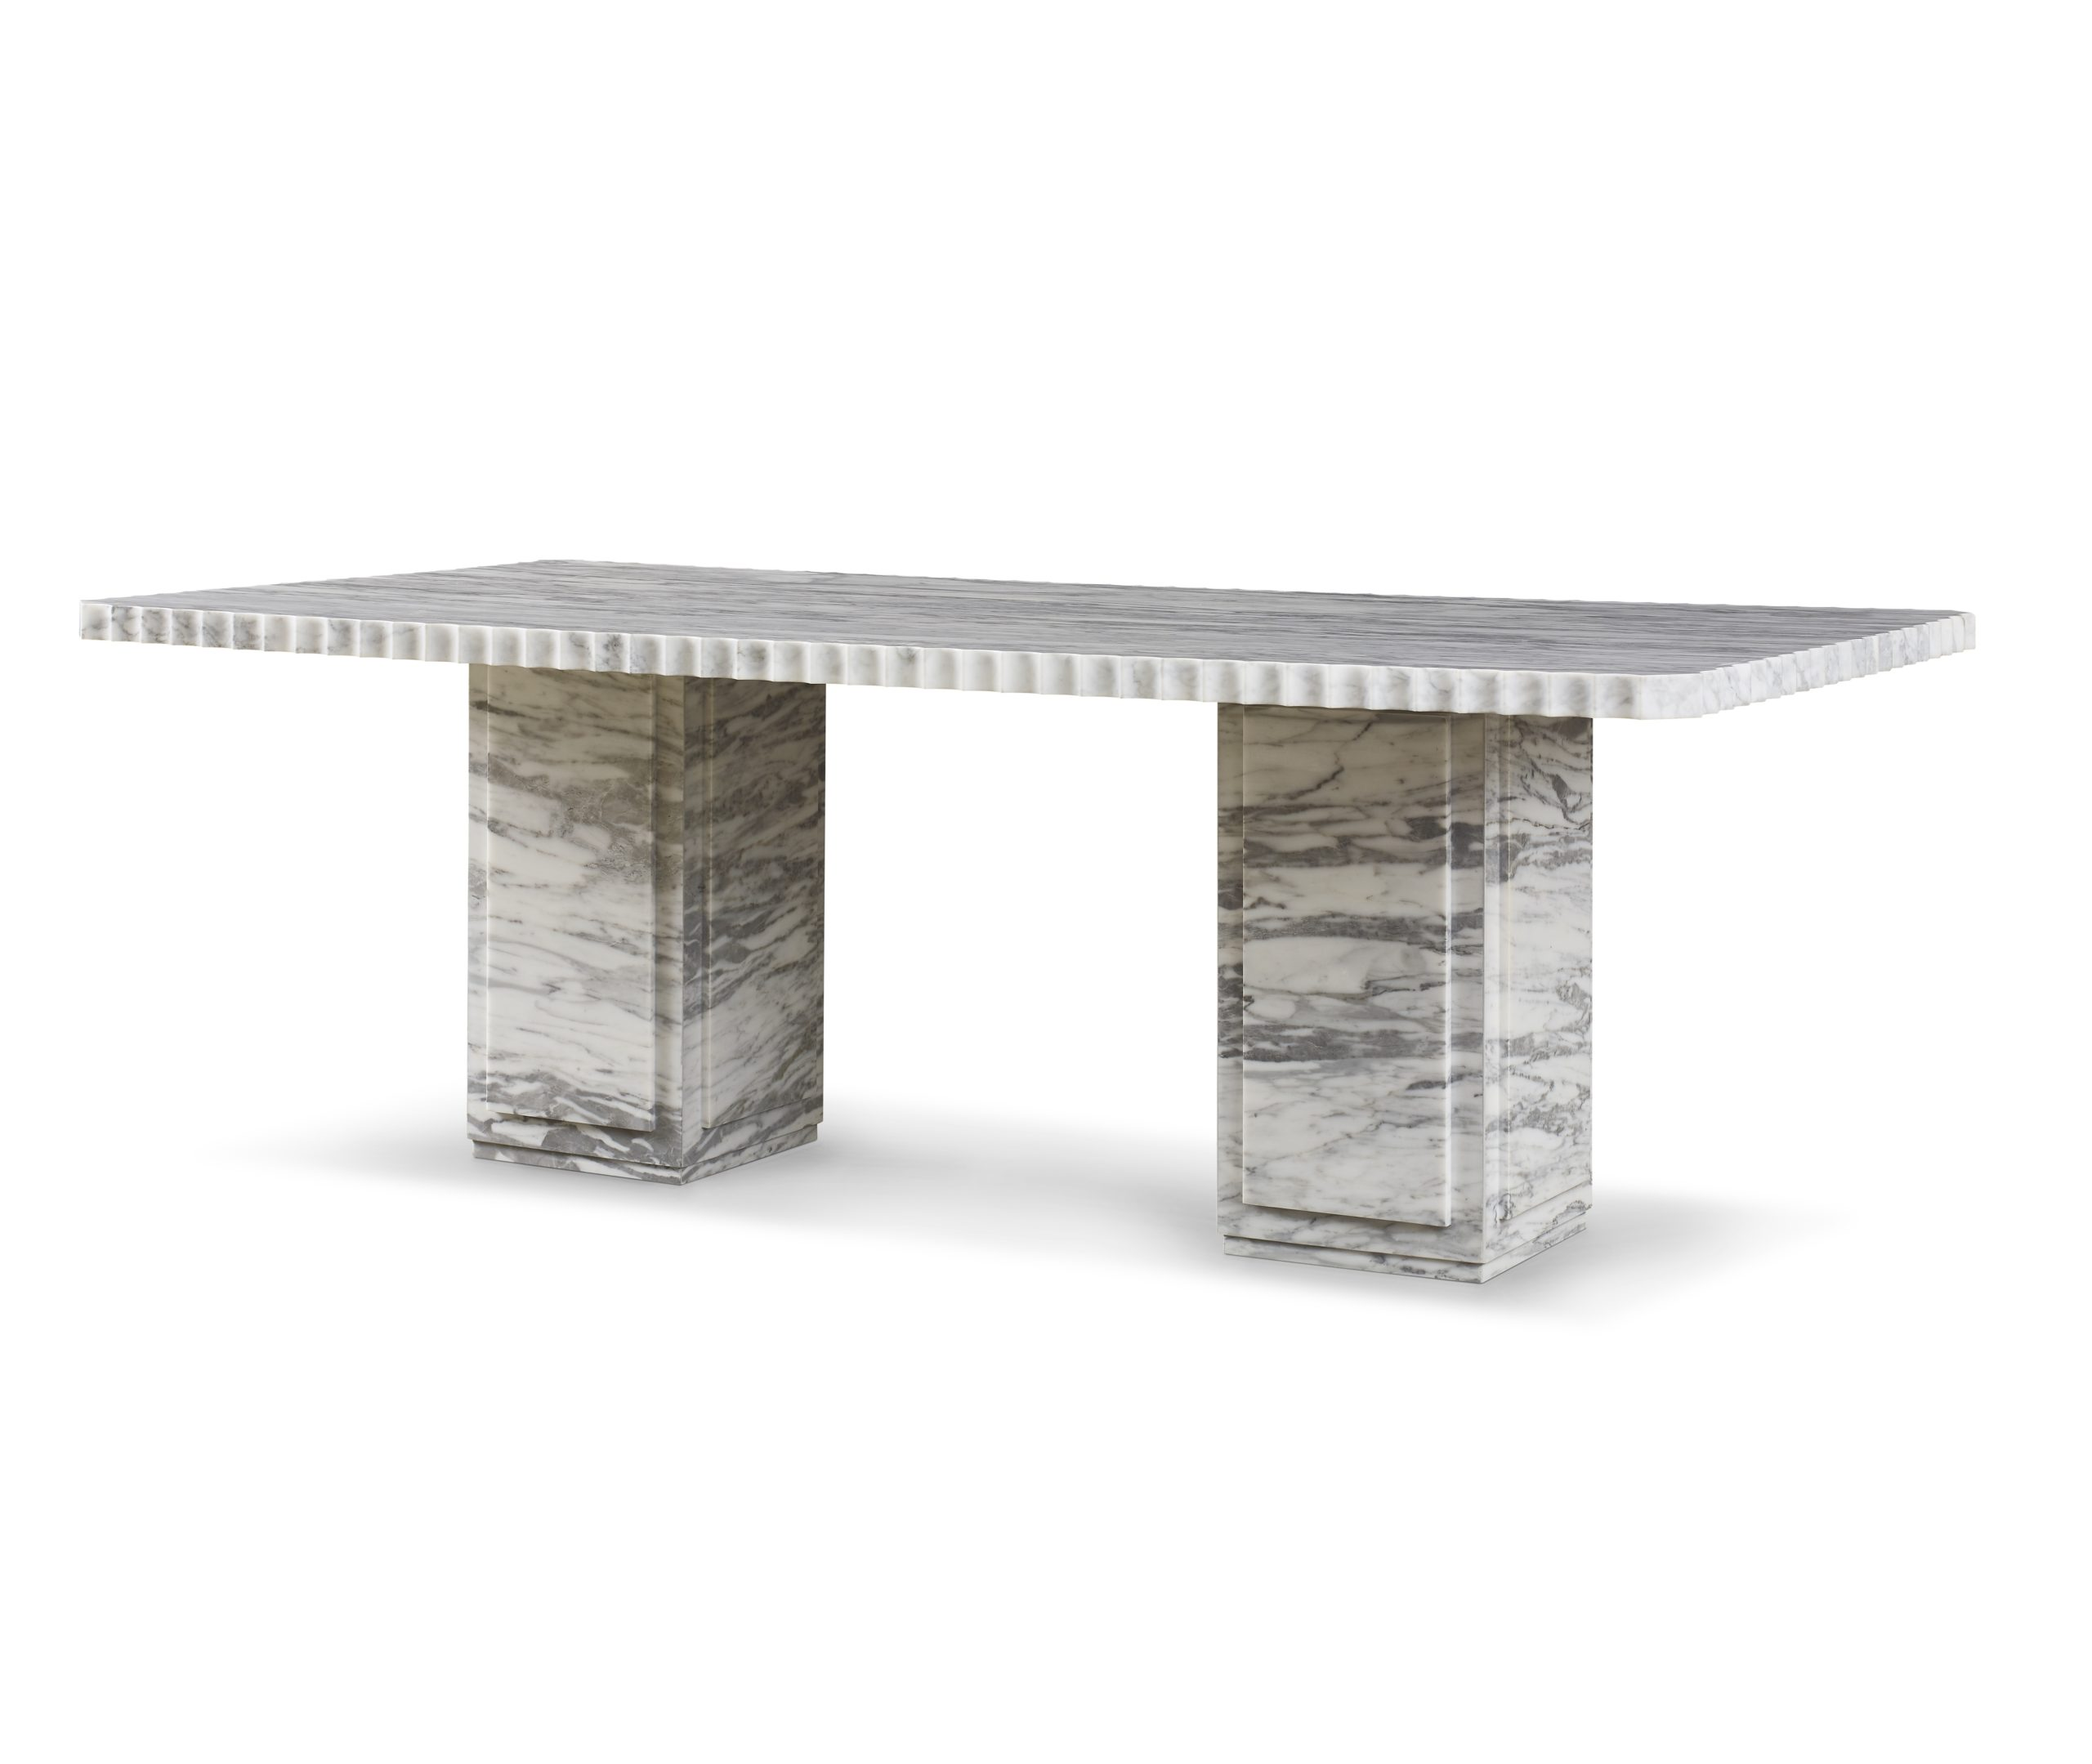 Baker_products_WNWN_marquis_rectangle_dining_table_BAA3239_FRONT_3QRT-scaled-2